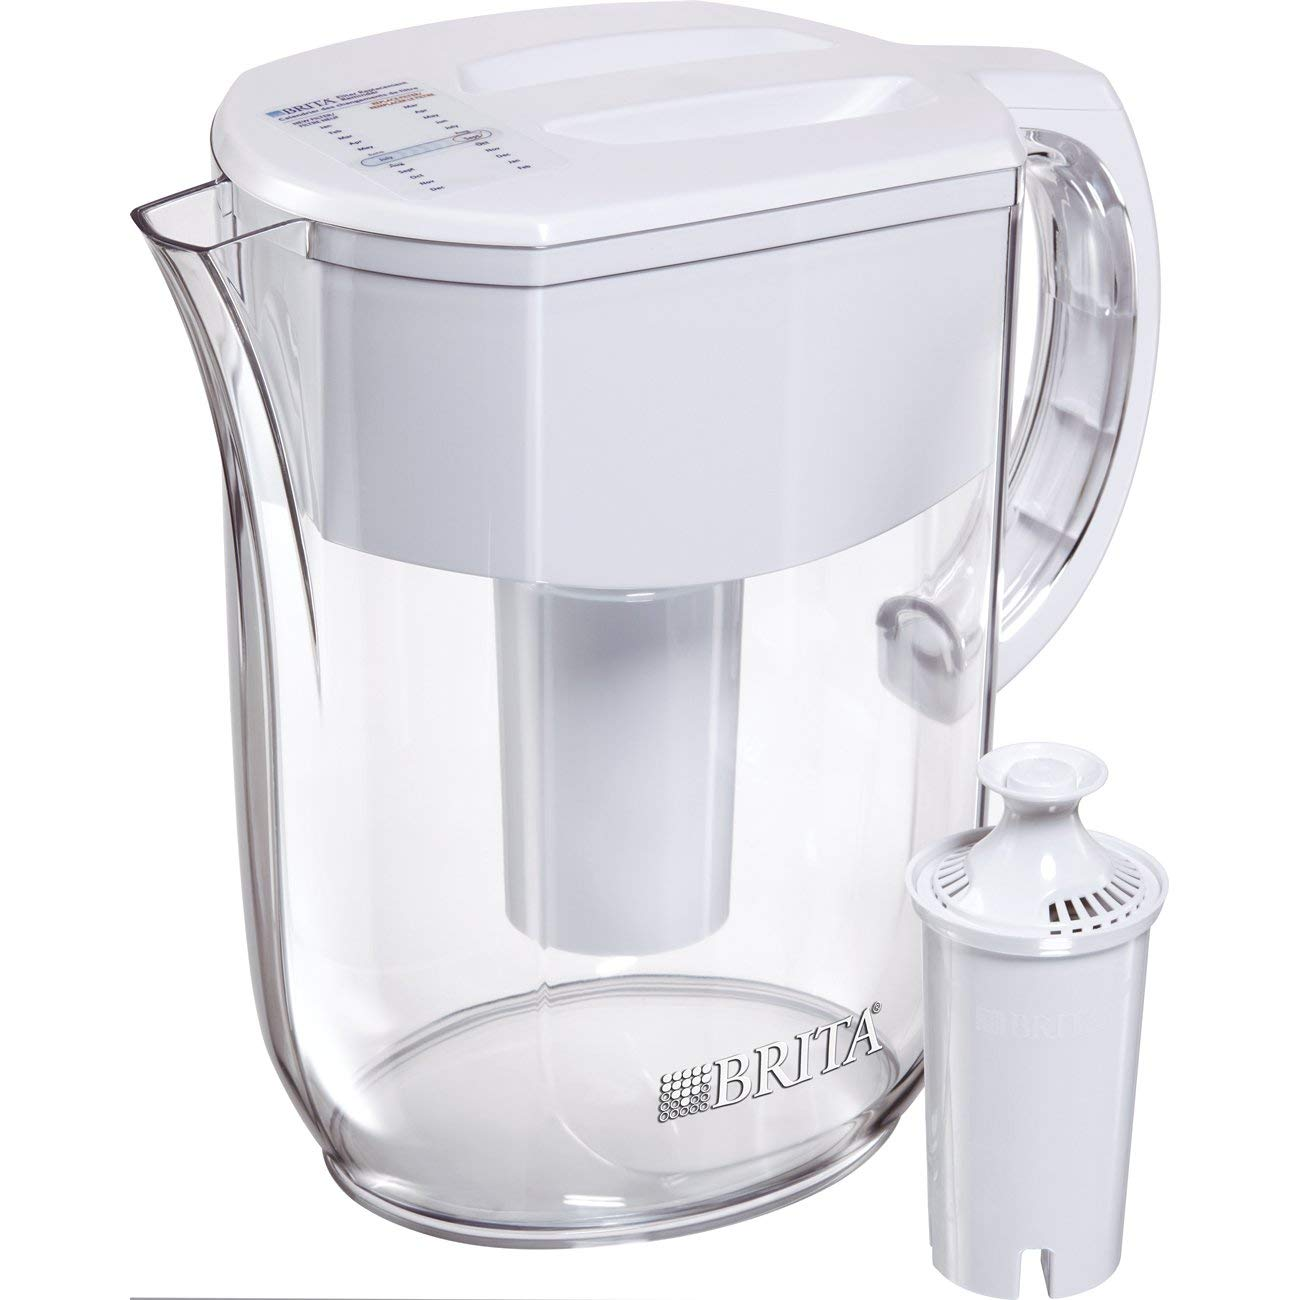 Brita 10 cup water filter pitcher